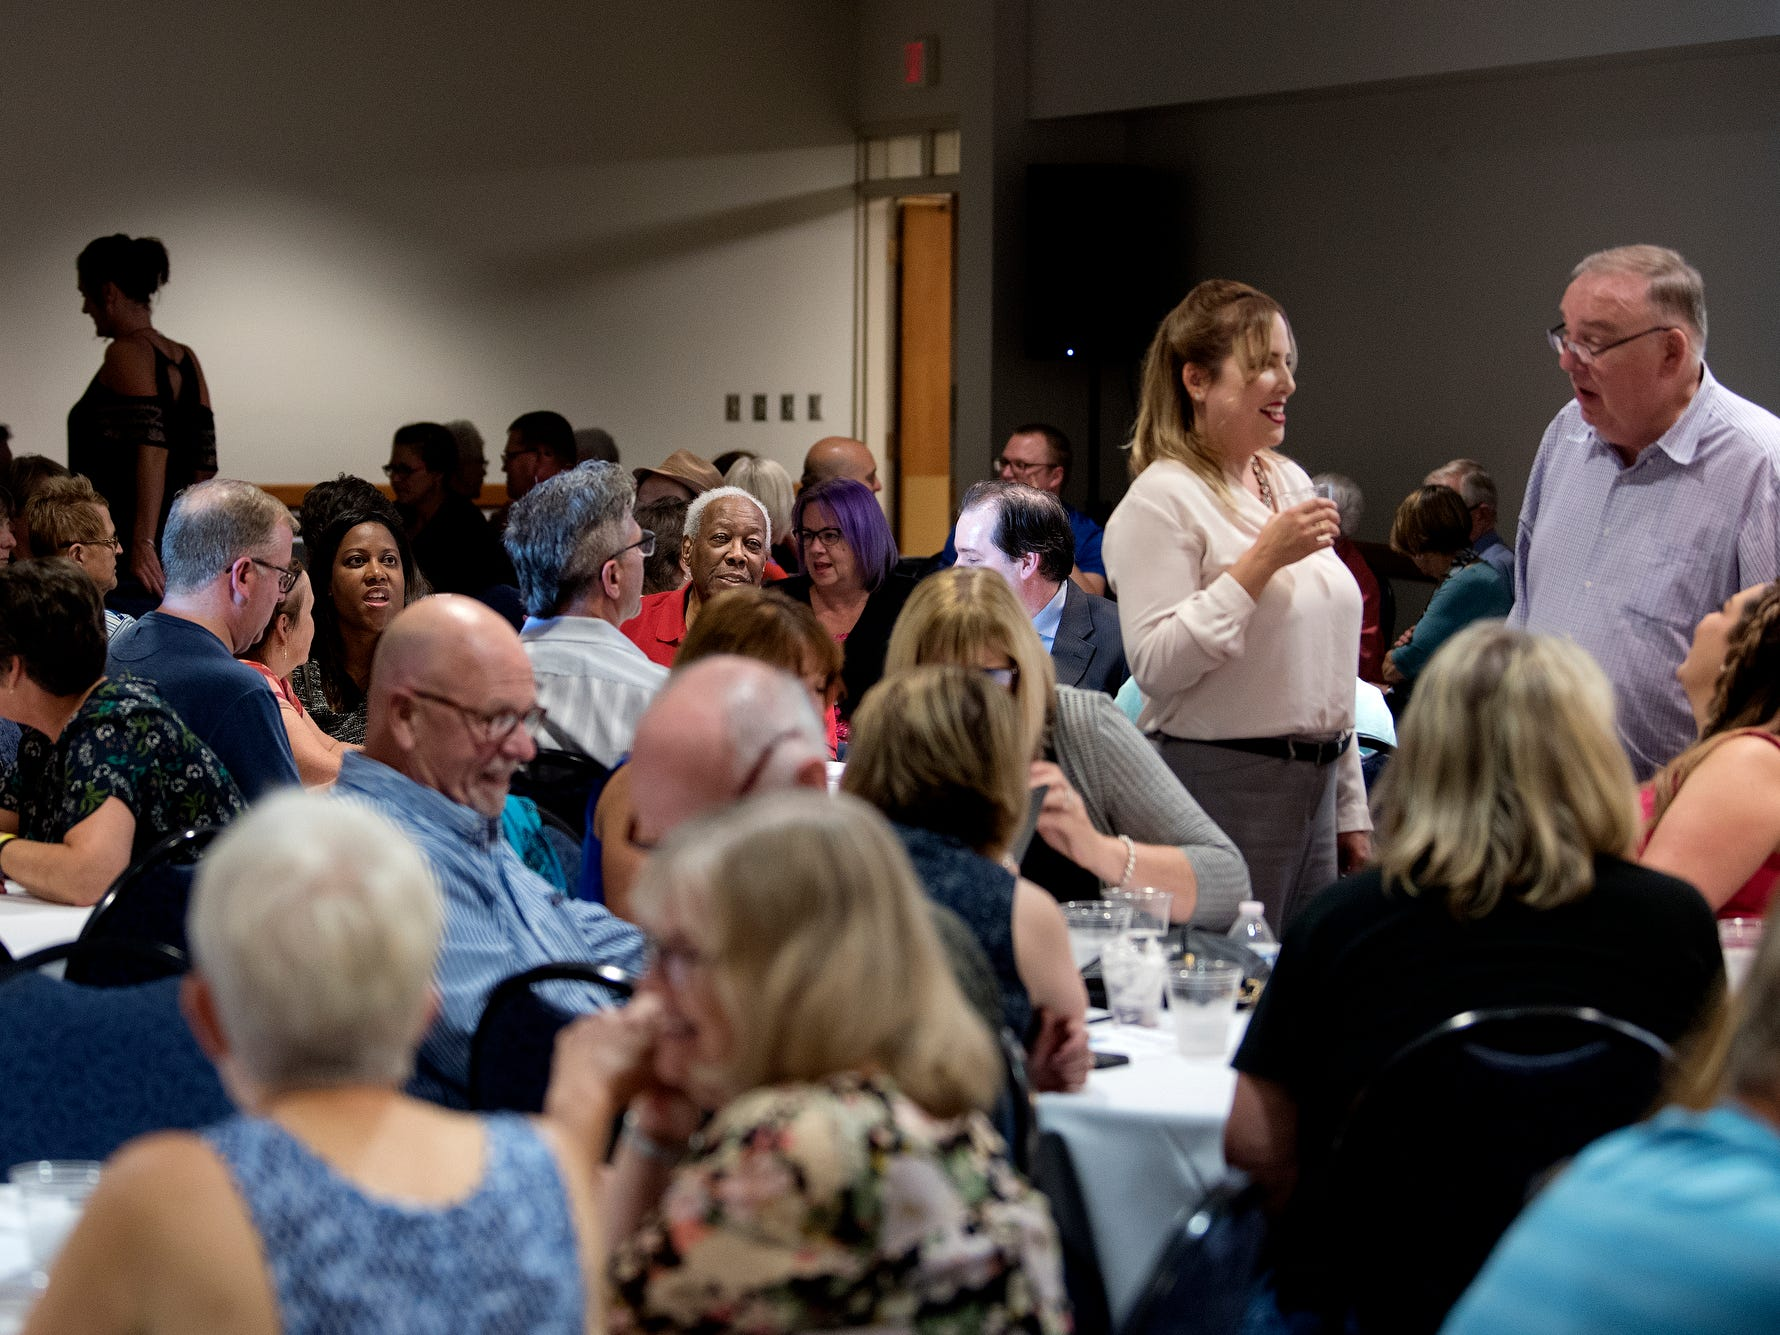 Members of the crowd mingle during the Lansing Storytellers Project: 'Are We There Yet?' event on Tuesday, Sept. 18, 2018, at the Hannah Community Center in East Lansing.